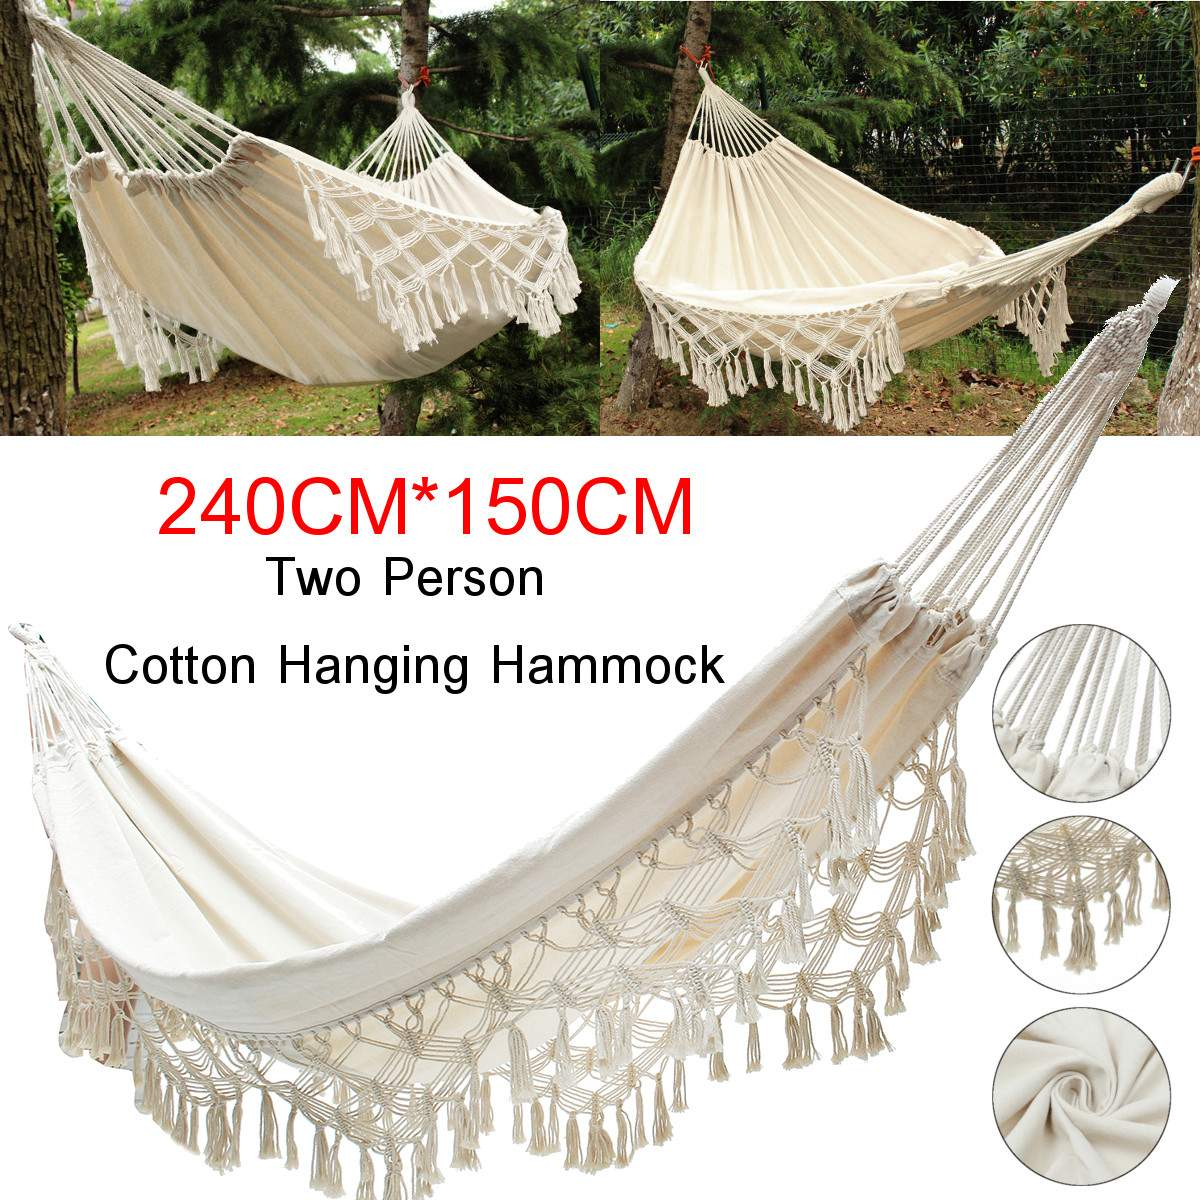 Möbel Double Person Cotton Hammock on Wood Frame Metal Loops for Hanging Garten & Terrasse